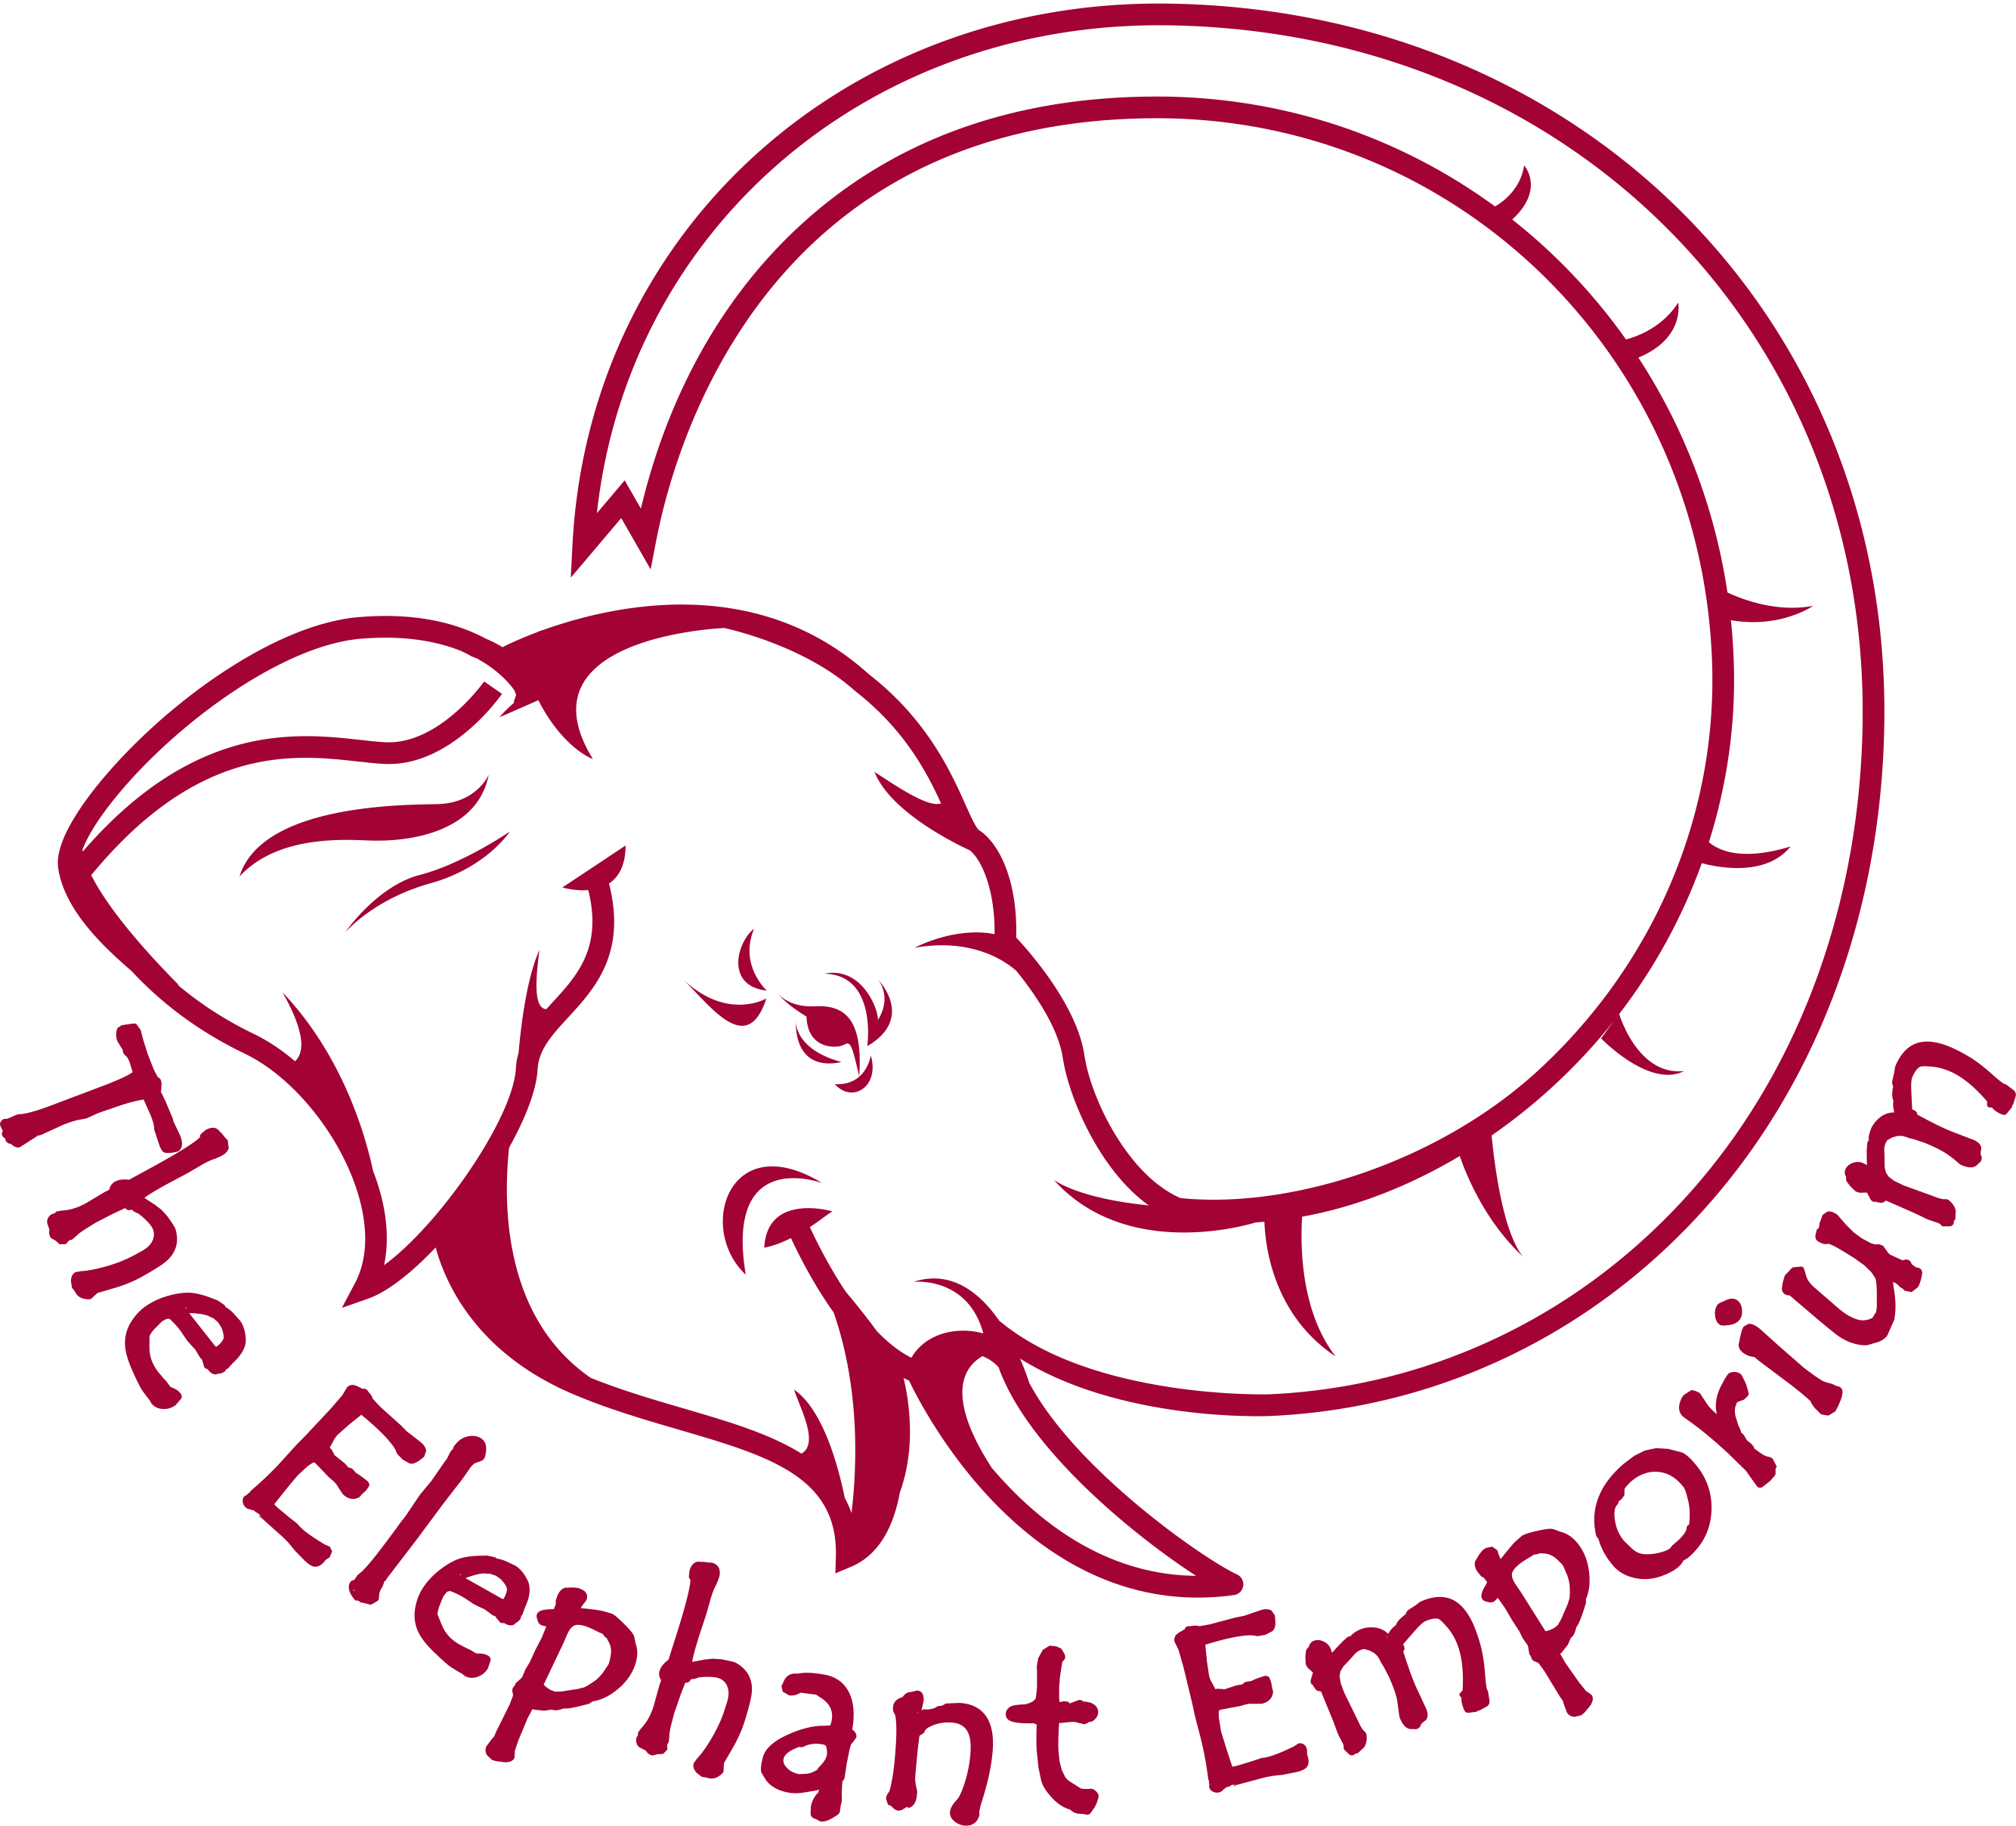 The Elephant Emporium